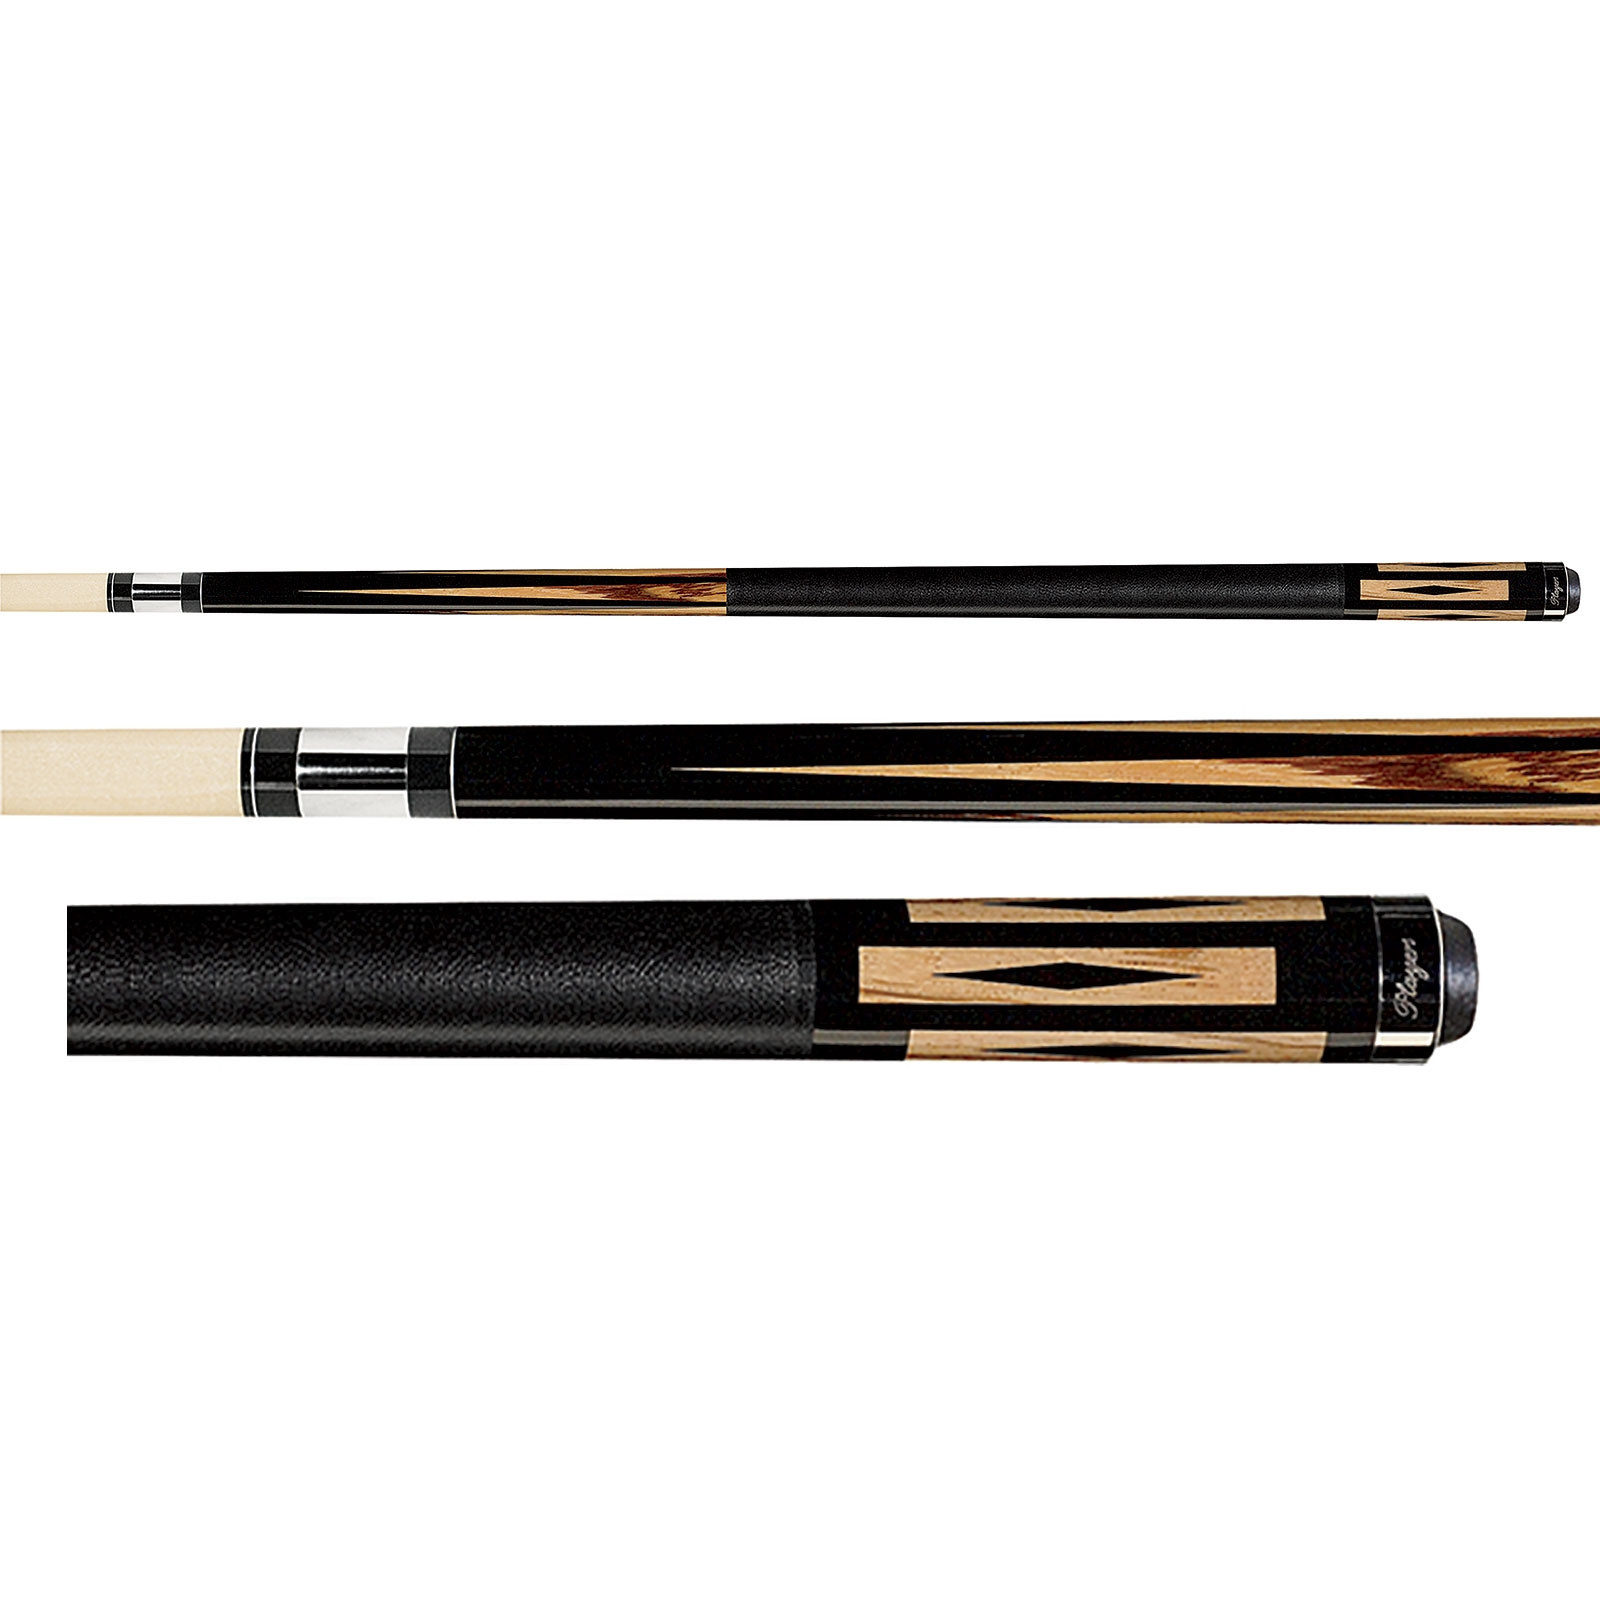 Players E-2500 Exotic Zebrawood Pool Cue Stick